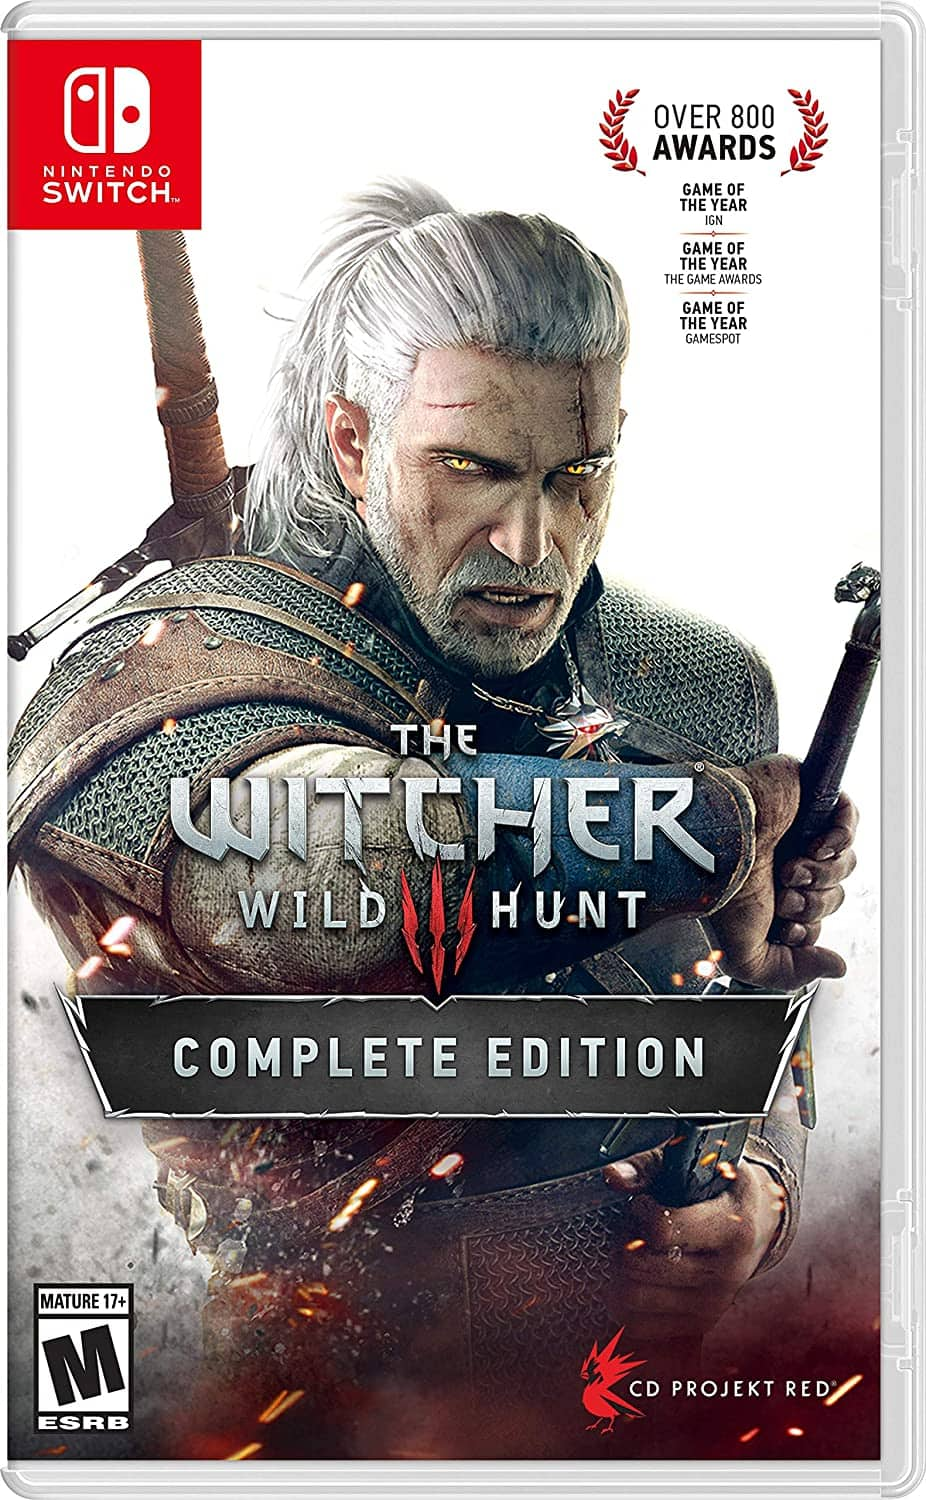 Witcher 3: Wild Hunt Complete Edition (Nintendo Switch)